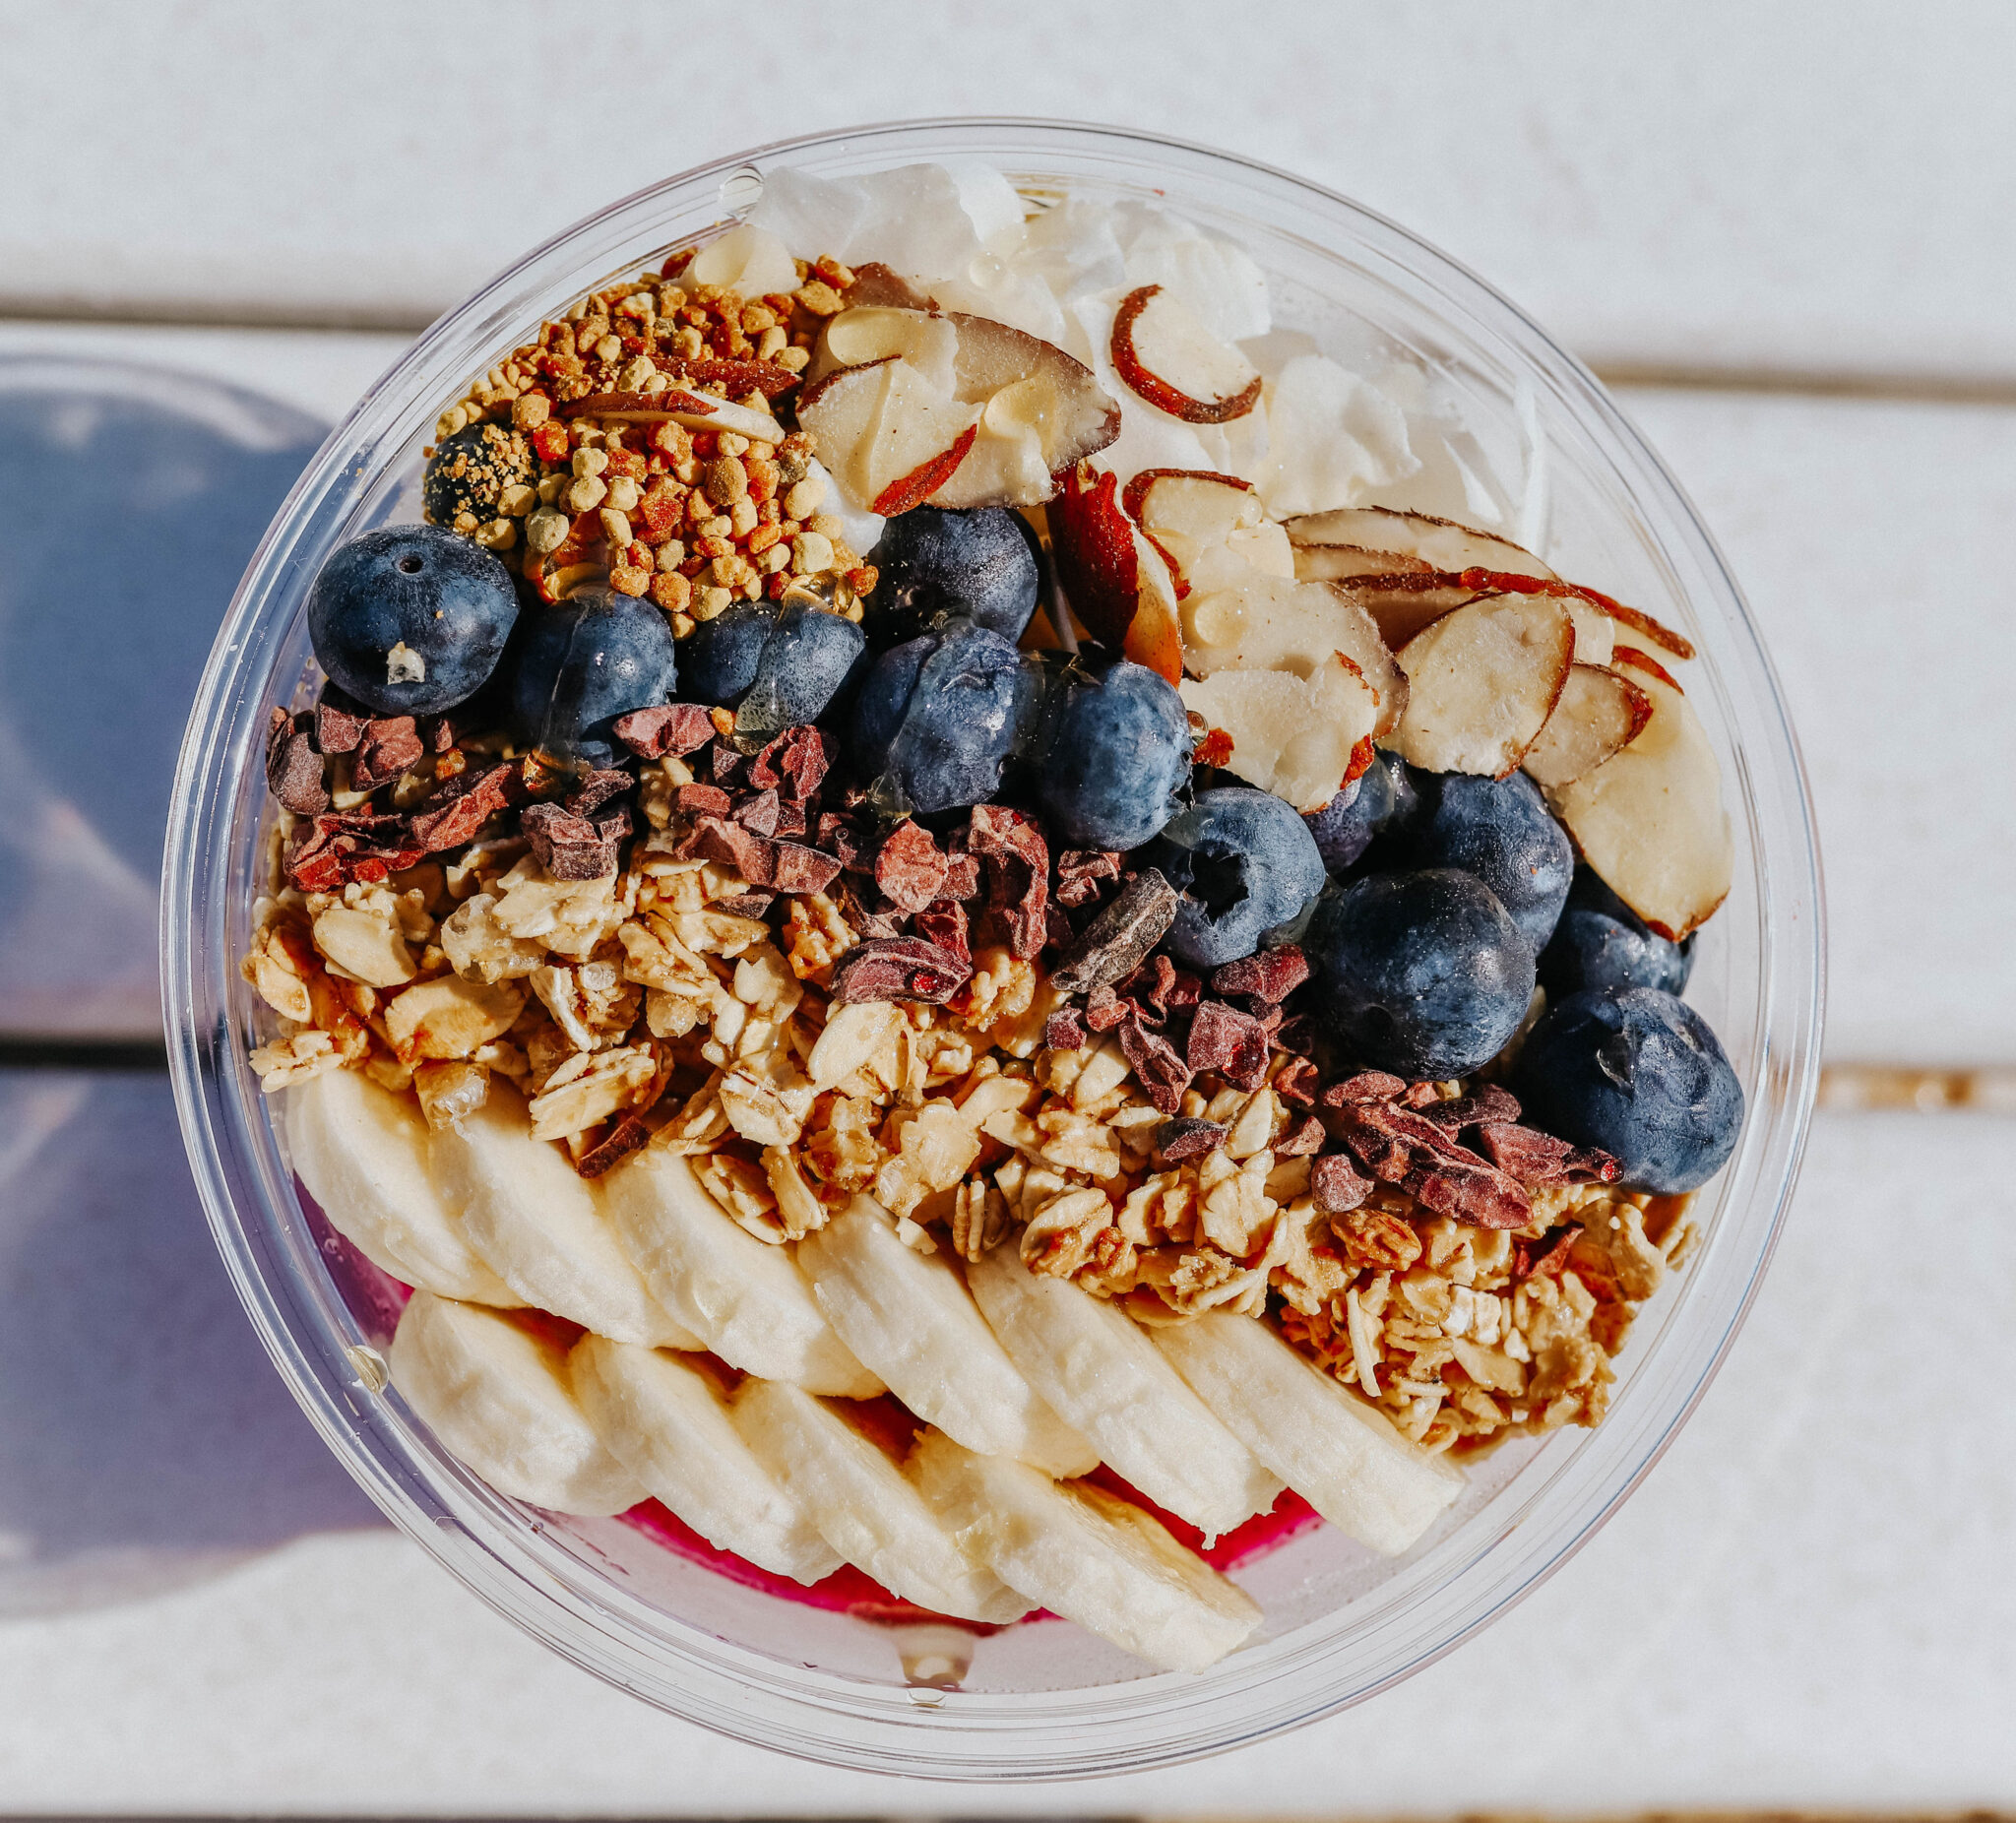 Green stream, juice, seaside, Florida, healthy living, delicious eats, bright colors, all natural, organic, açaí bowls, smoothies, toasts